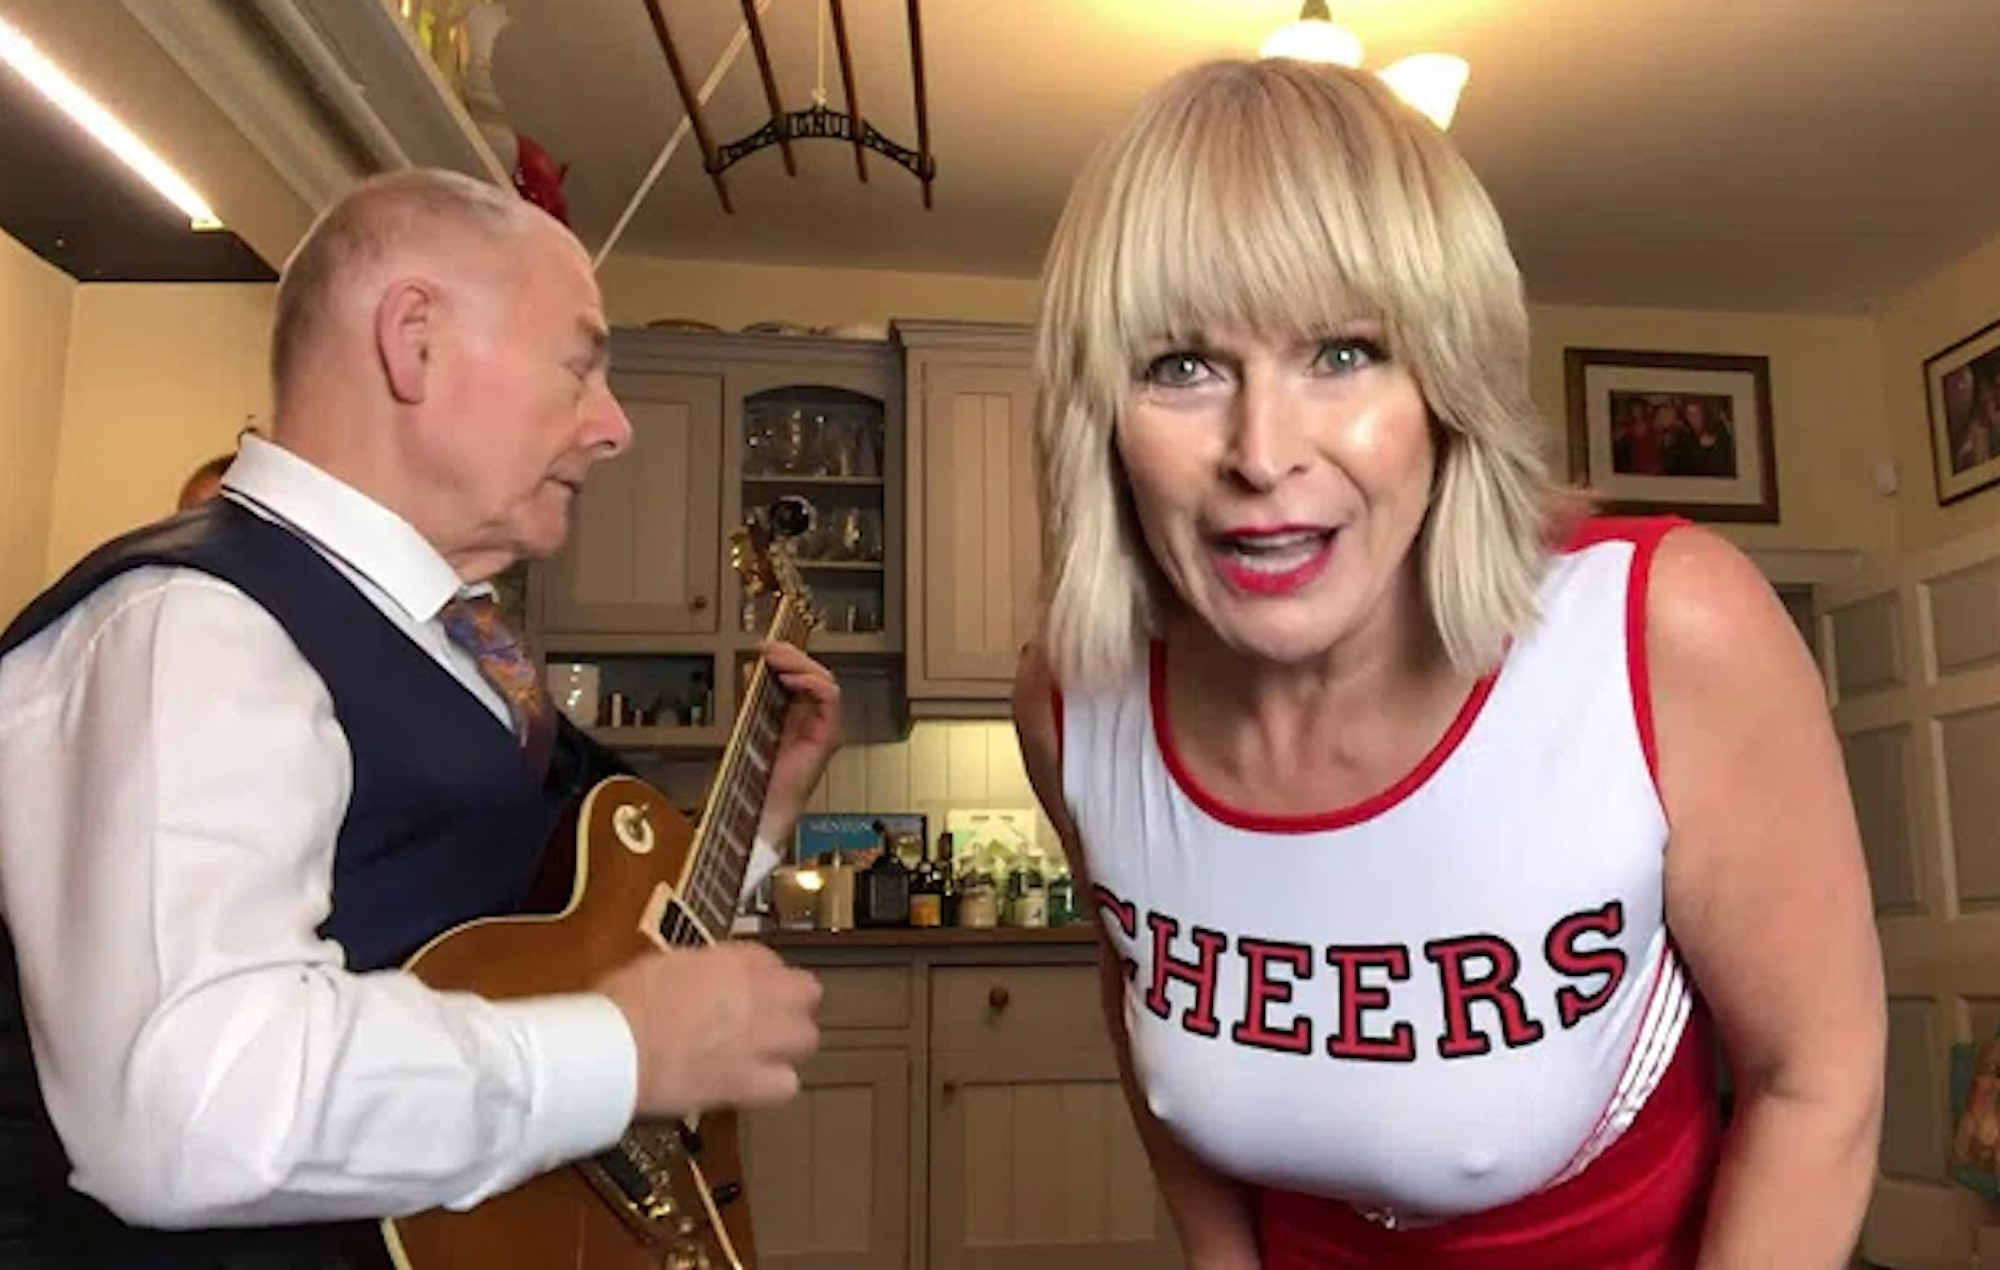 Robert Fripp and singer Toyah Wilcox share kitchen cover of Billy Idol's 'Rebel Yell'